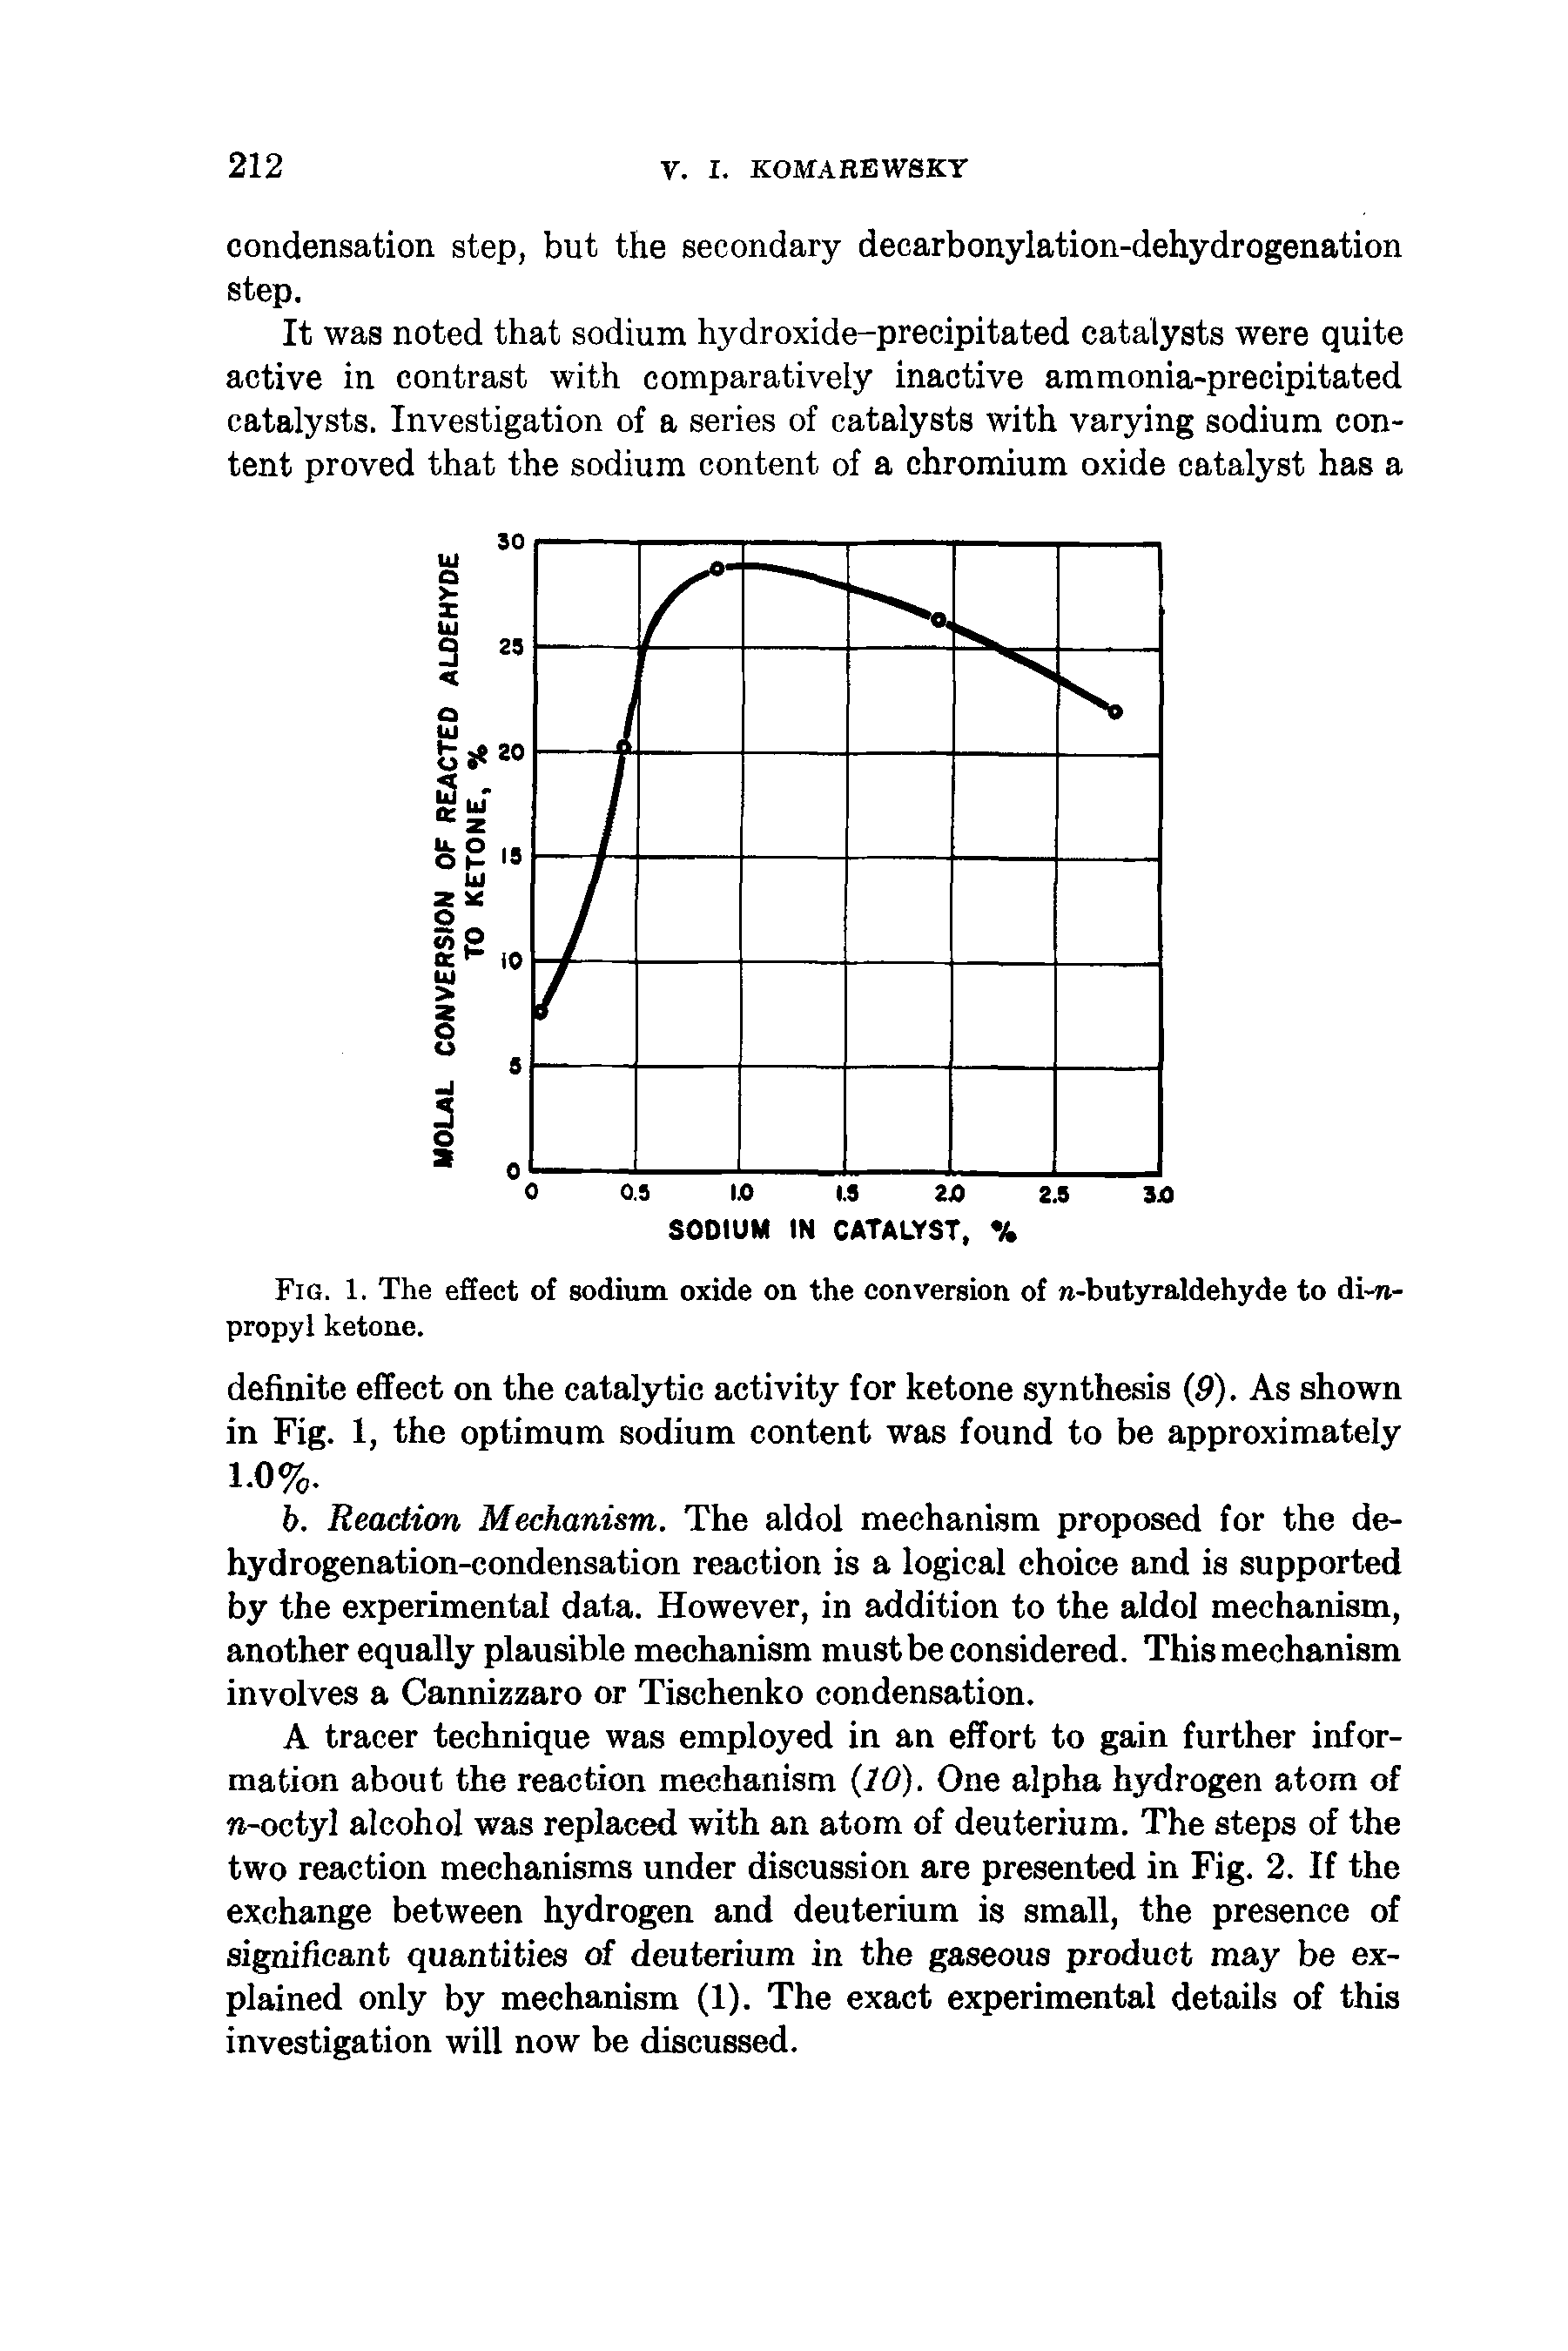 "Fig. 1. The effect of <a href=""/info/sodium_oxide"">sodium oxide</a> on the conversion of n-butyraldehyde to di-n-propyl ketone."